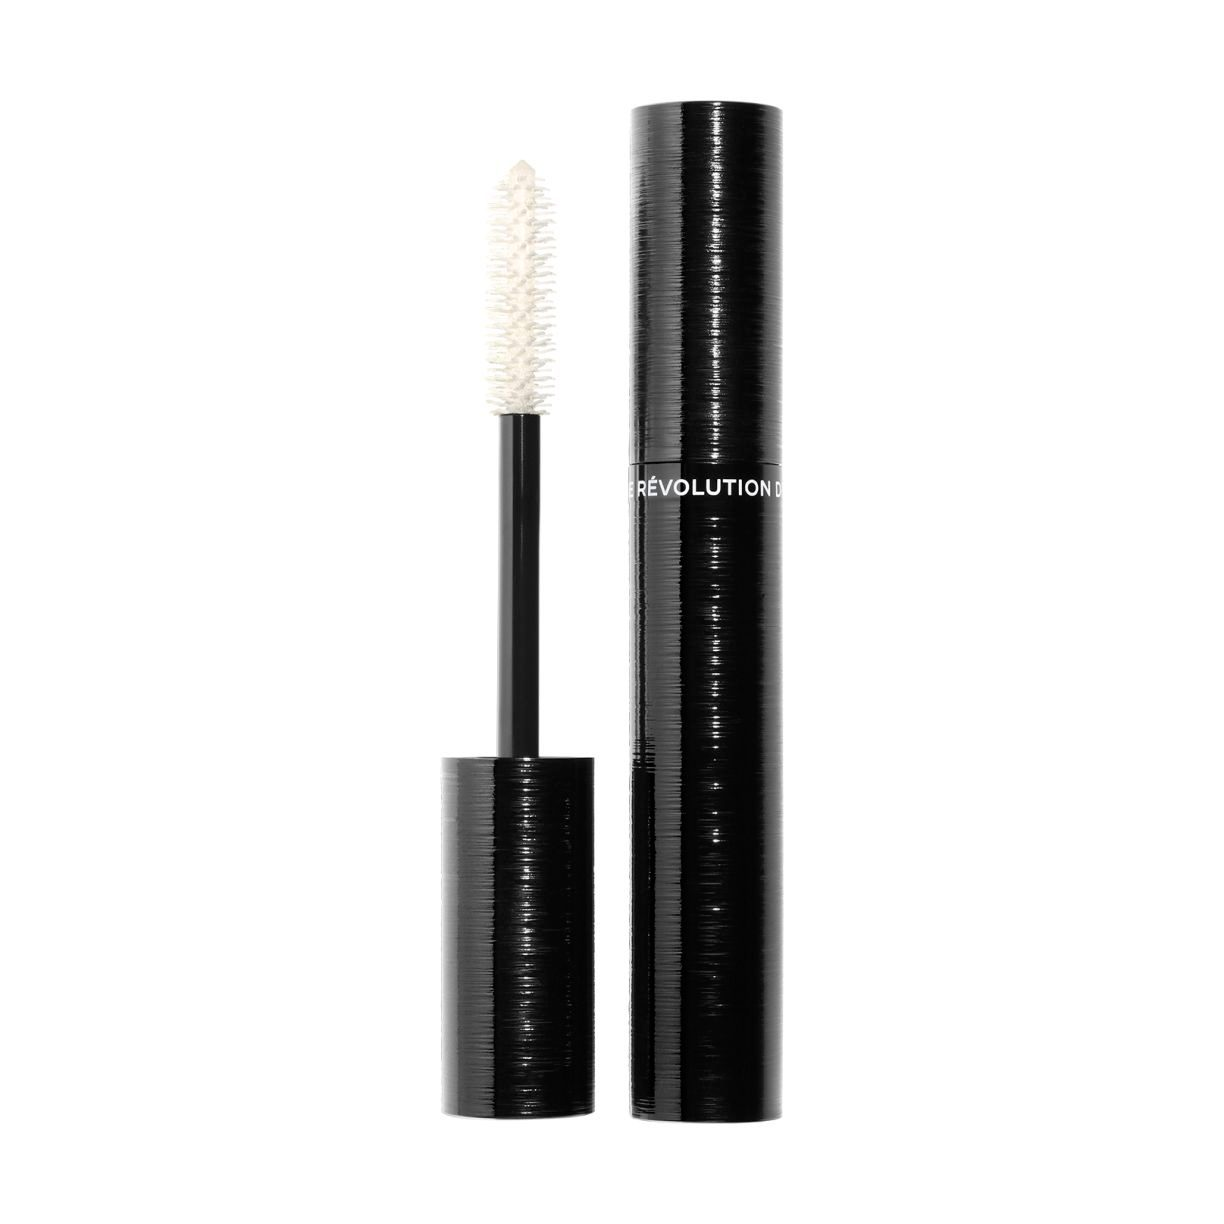 LE VOLUME RÉVOLUTION DE CHANEL EXTREME VOLUME MASCARA. 3D-PRINTED BRUSH. 10 NOIR 6G